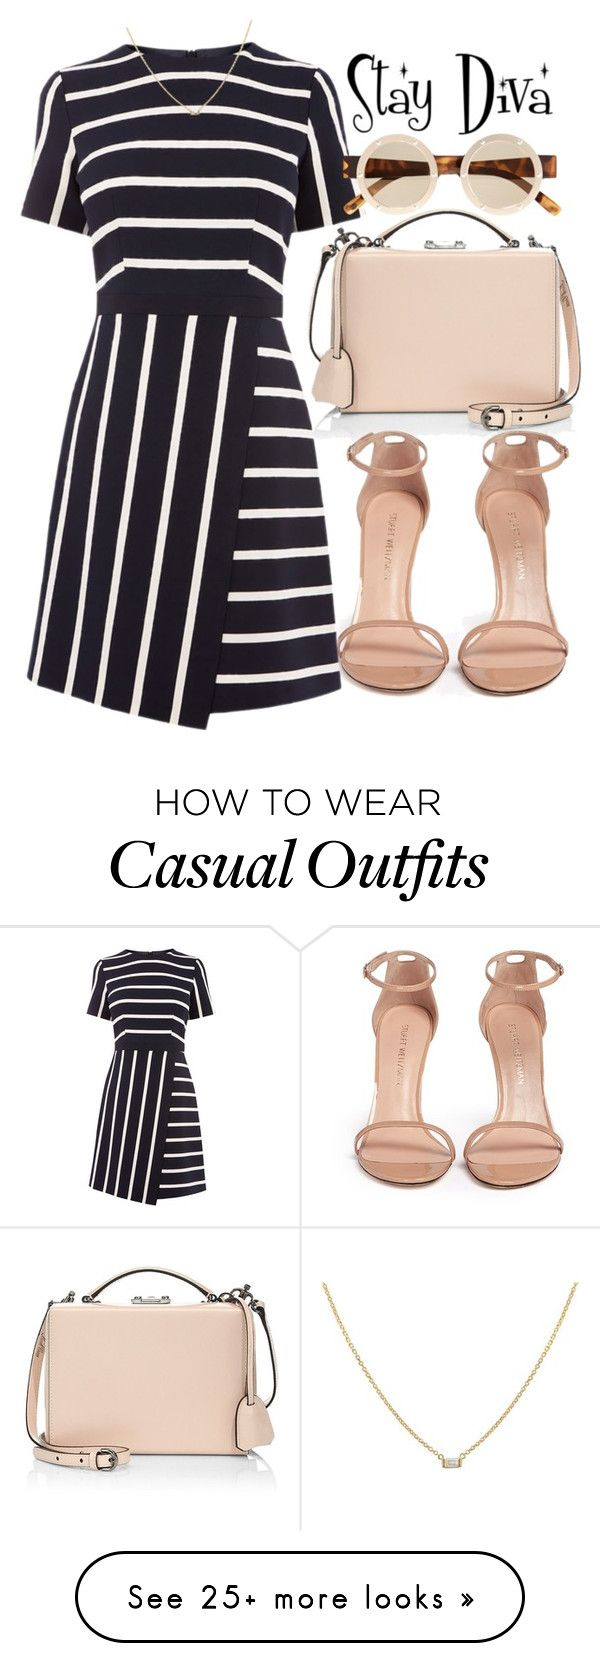 """Casual"" by staydiva on Polyvore featuring Mark Cross, Stuart Weitzman and Le Specs"